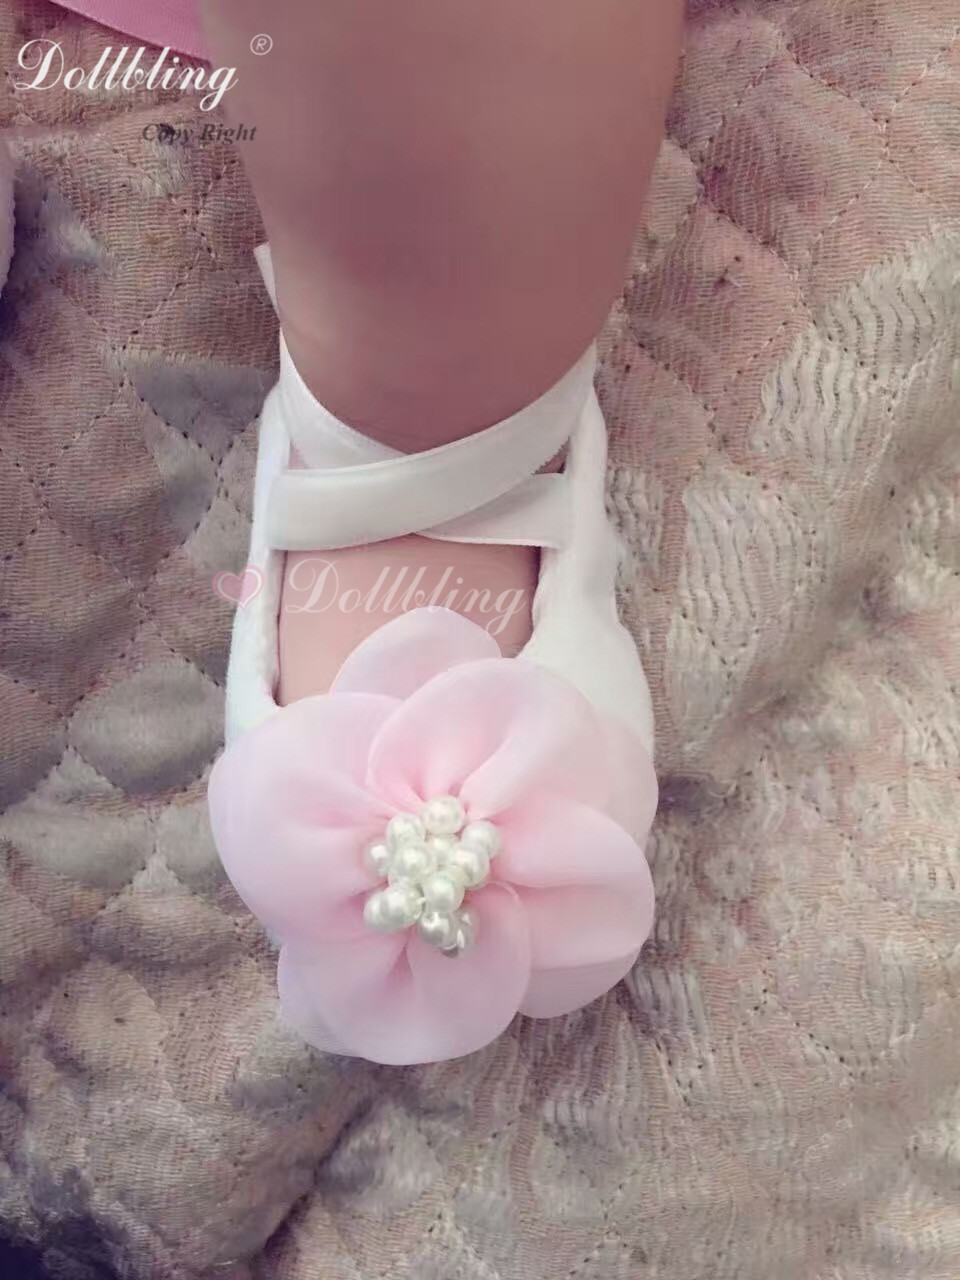 Baby Bling Boutique Pure Handmade Custom Shoes Pulsh Pink Flower Gorgeous  Elegant Outfit Match Posh Cutest Baby Birthday Crib 1992c072a940